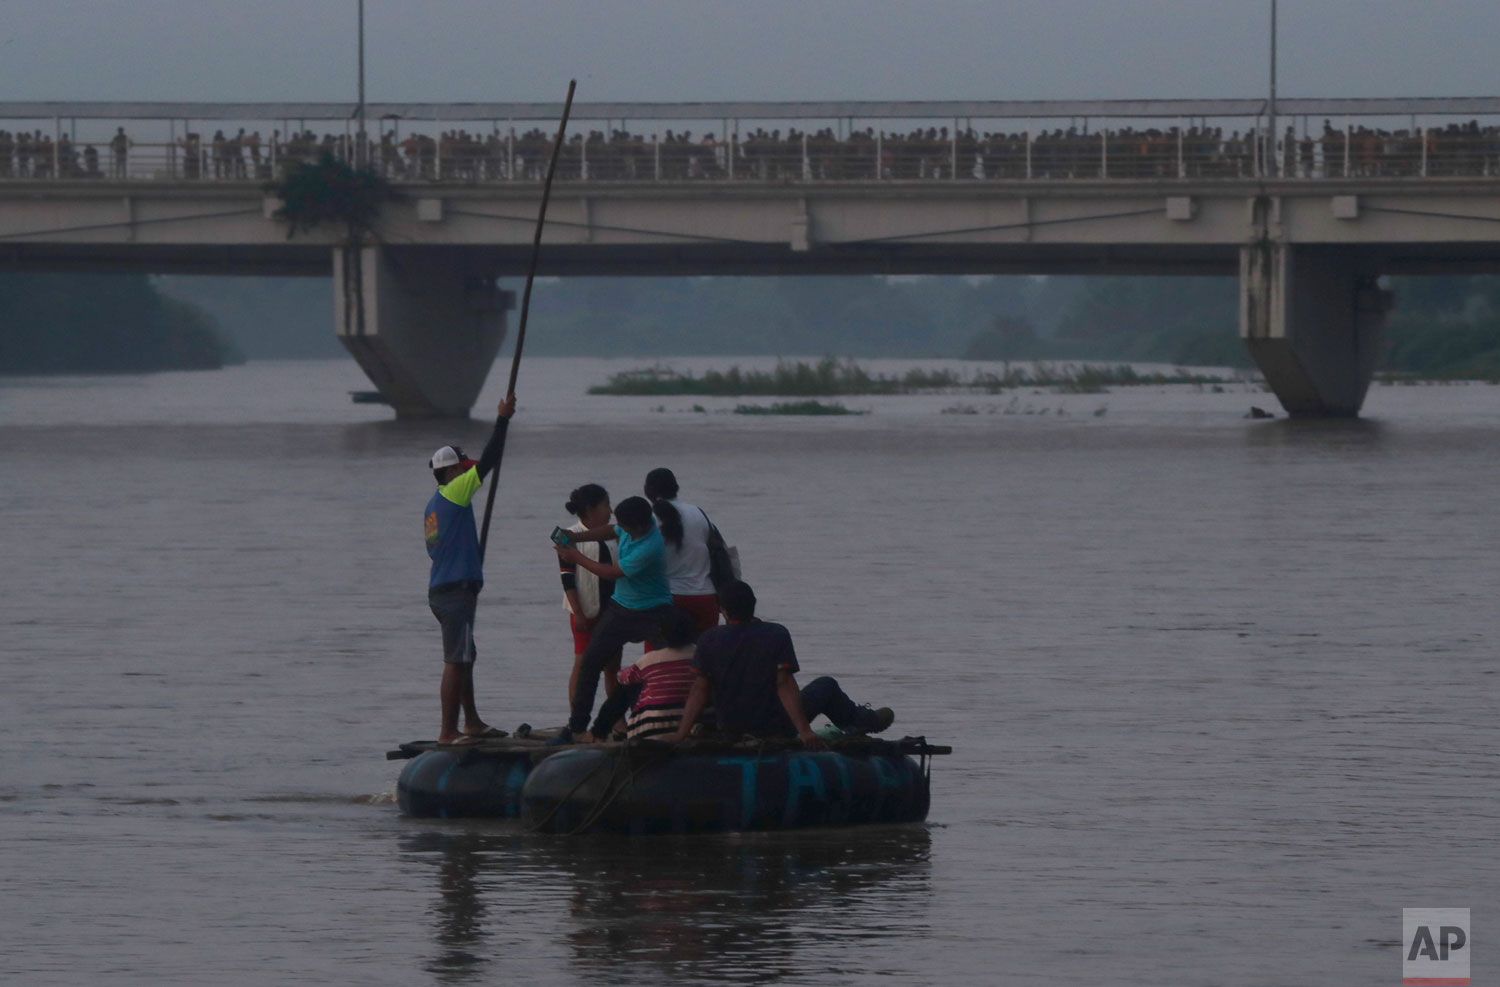 A group of Central American migrants on a raft cross the Suchiate river on the Guatemala – Mexico border as hundreds more walk across the border bridge, near Ciudad Hidalgo, Mexico, Wednesday, June 5, 2019.  (AP Photo/Marco Ugarte)